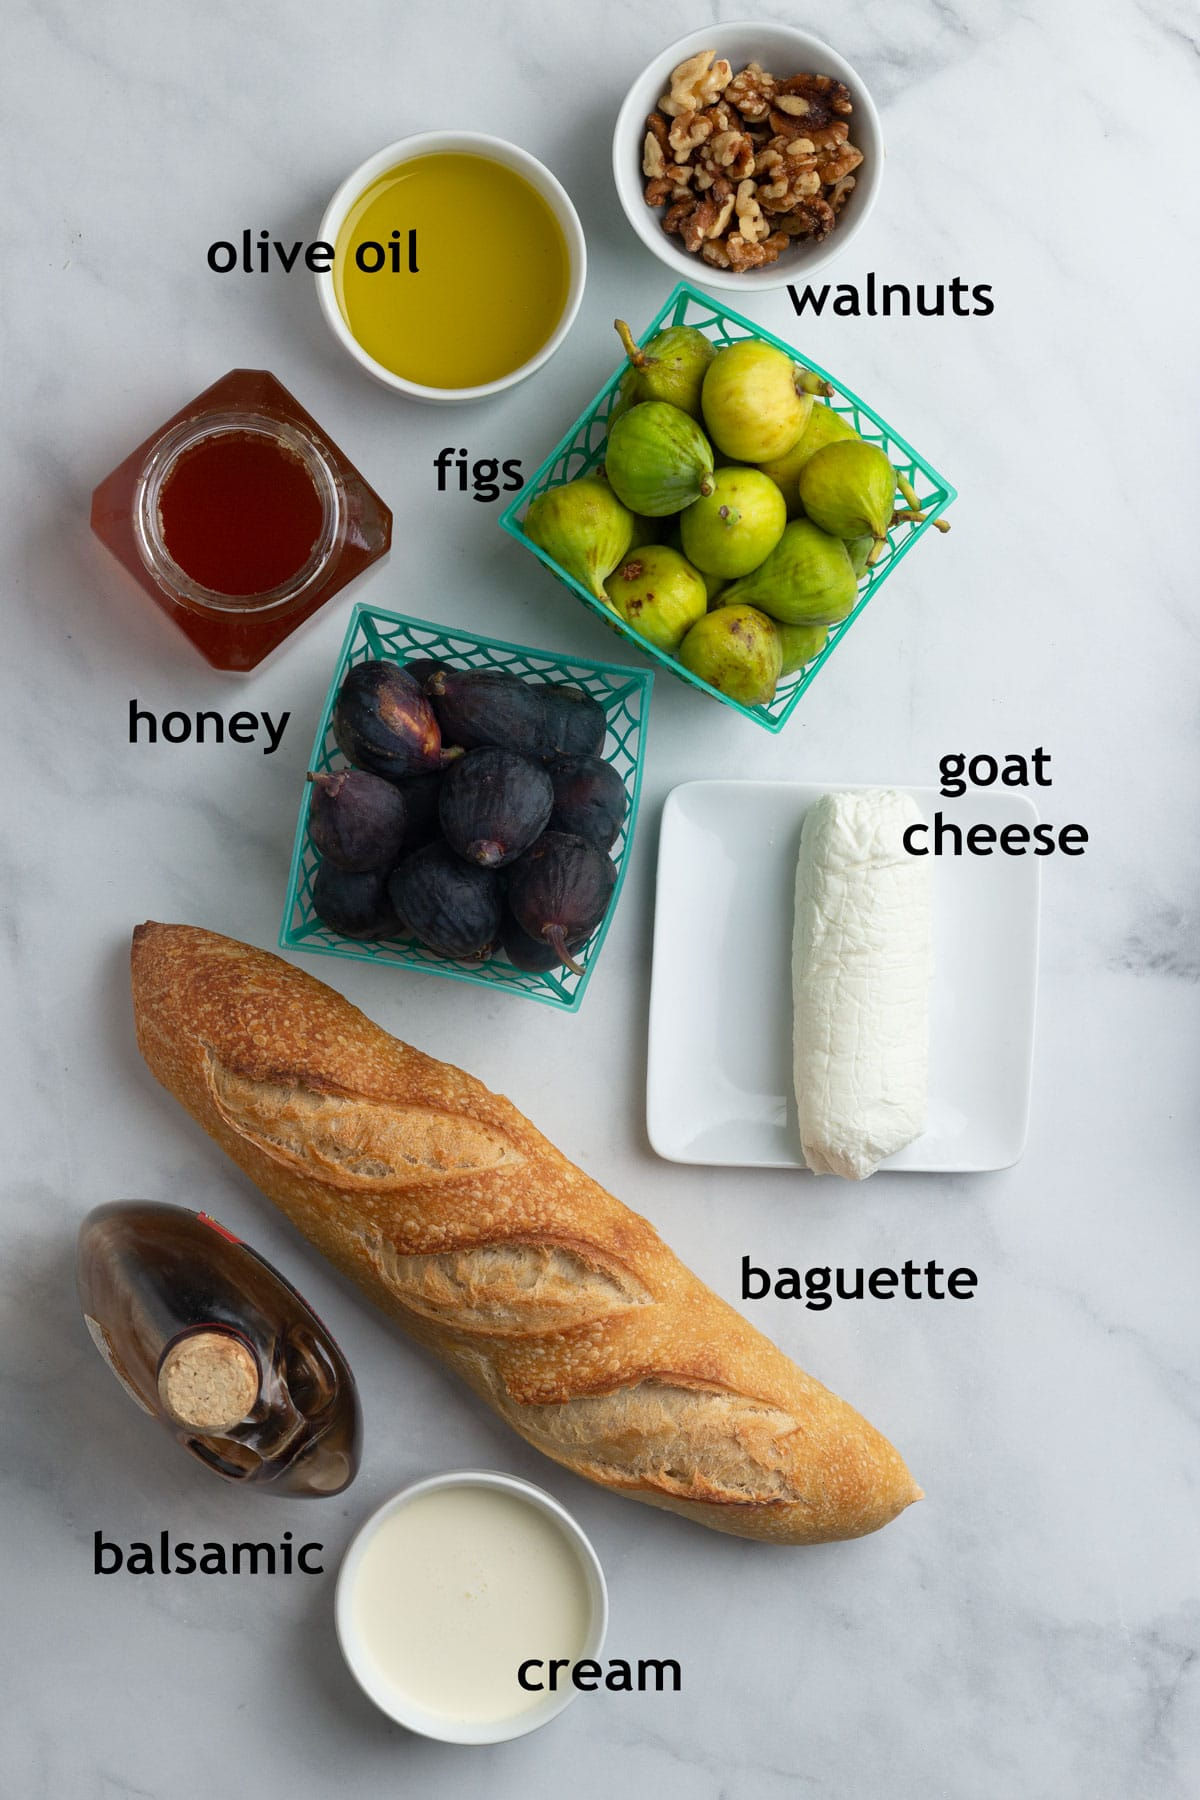 Ingredients, including baguette bread, goat cheese, cream, figs, walnuts, honey and aged balsamic vinegar.